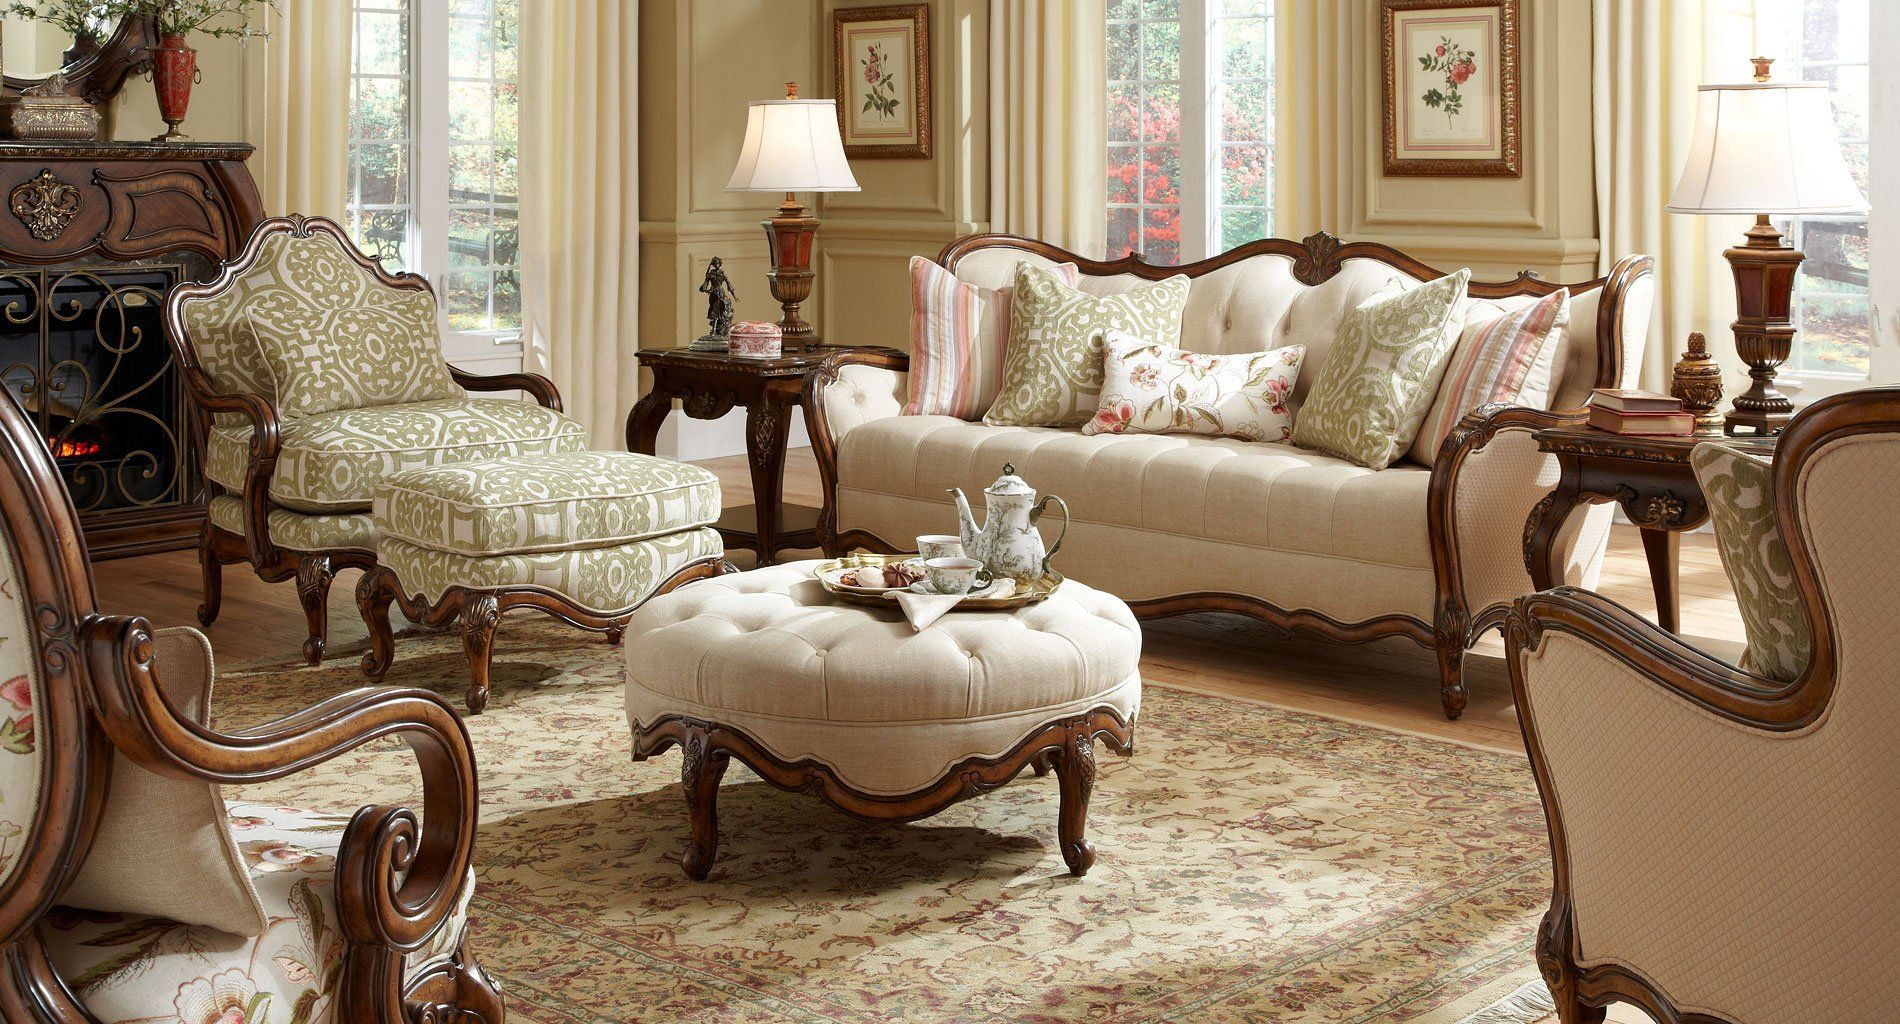 Lavelle melange living room set